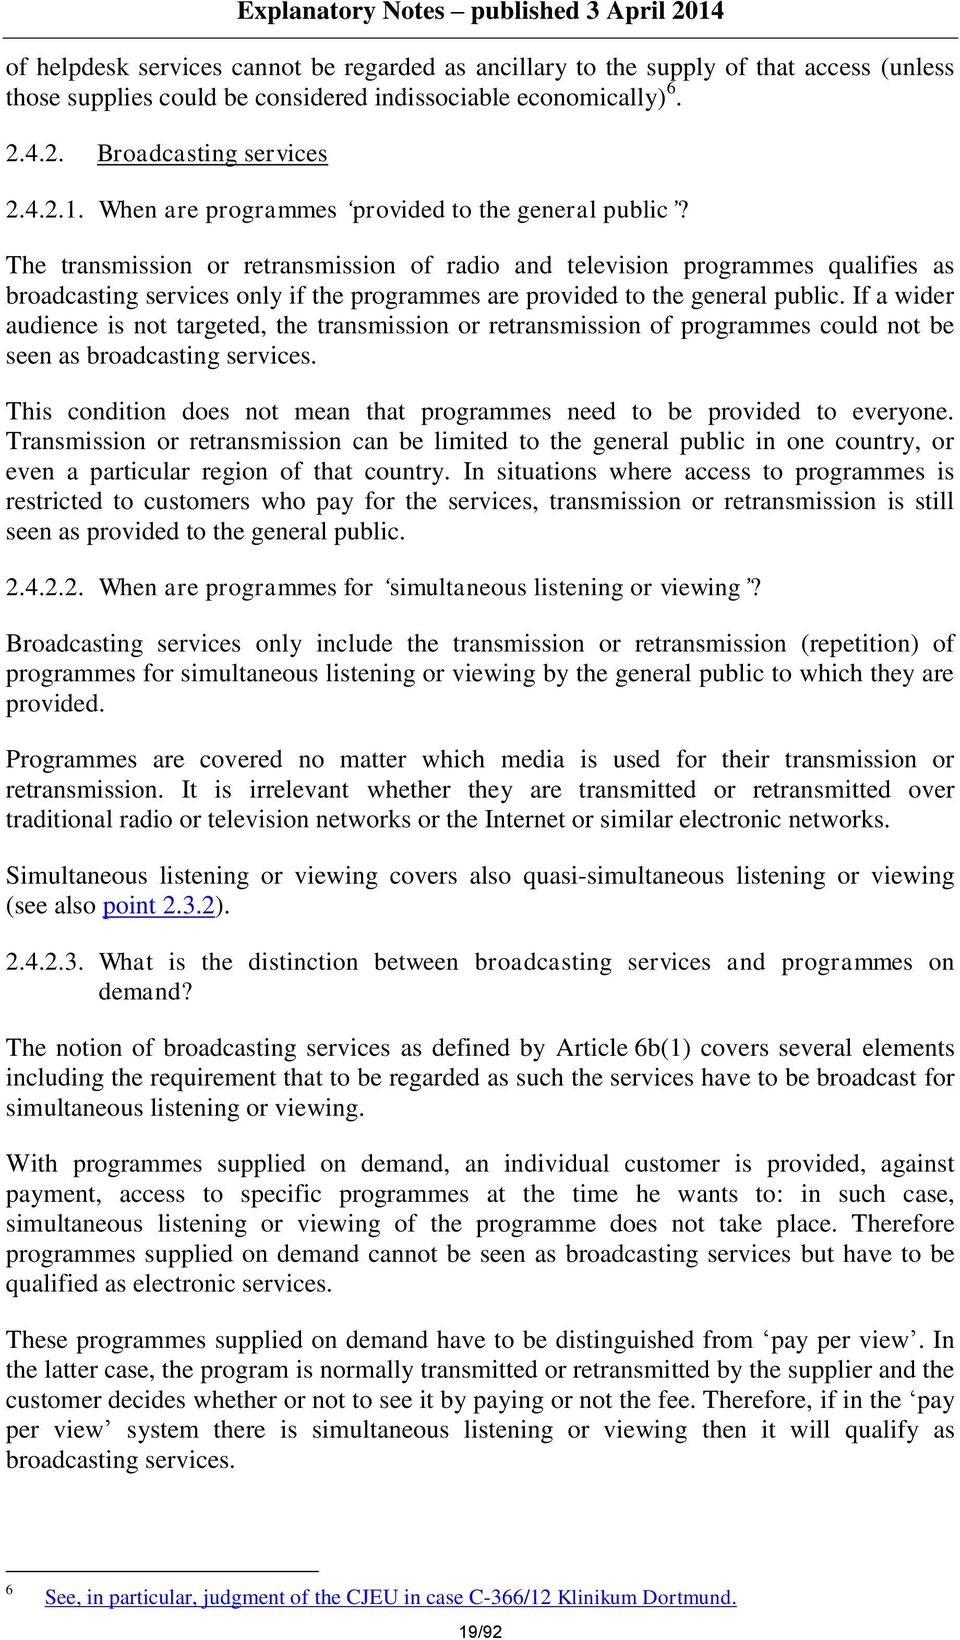 The transmission or retransmission of radio and television programmes qualifies as broadcasting services only if the programmes are provided to the general public.